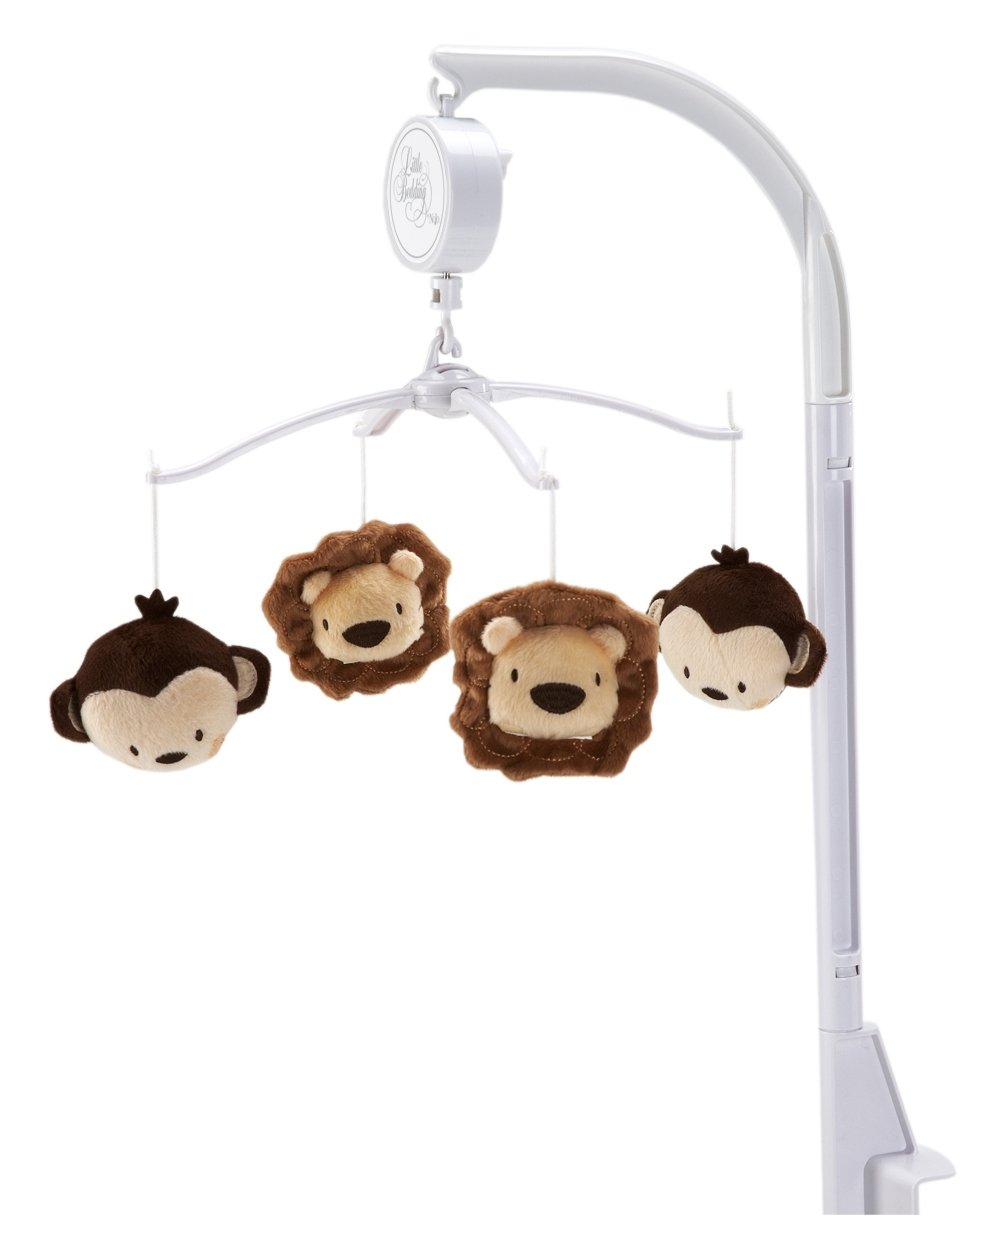 Little Bedding by NoJo Jungle Pals Musical Mobile Crown Craft Infant Products 7660079 jungle-pals-musical-mobile1